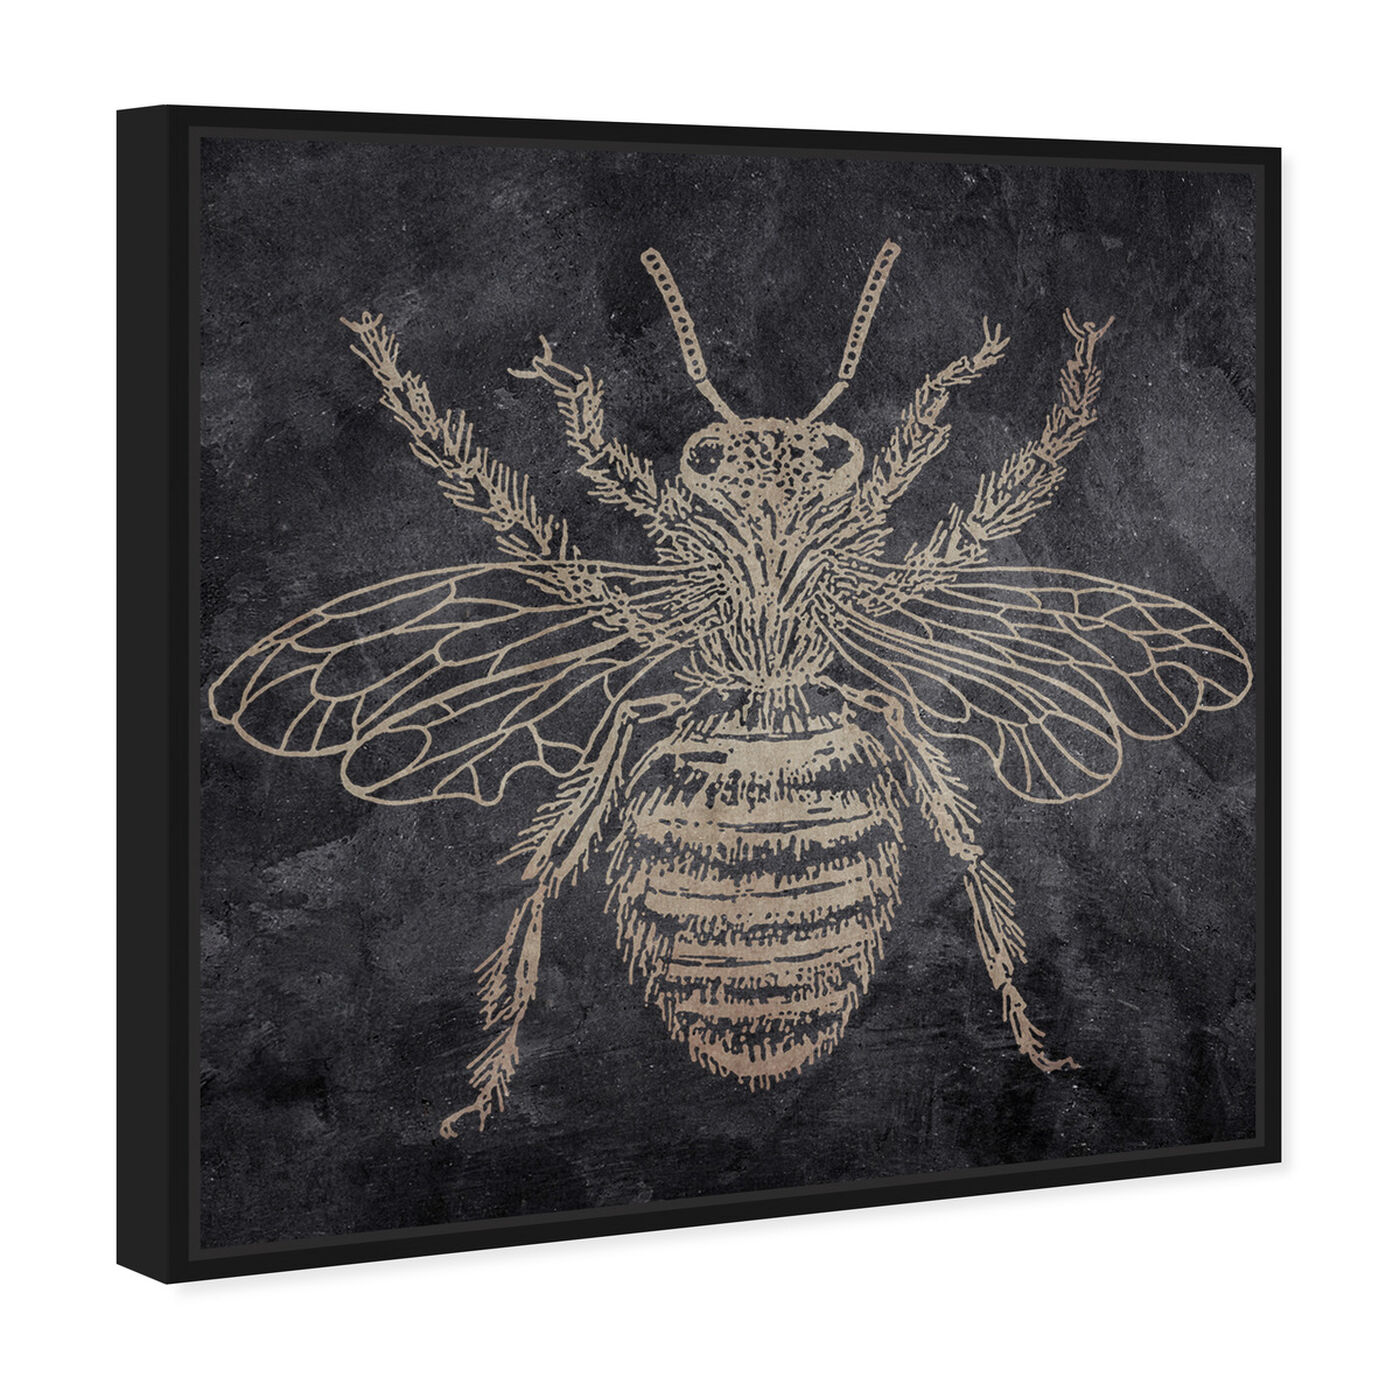 Angled view of Bee featuring animals and insects art.